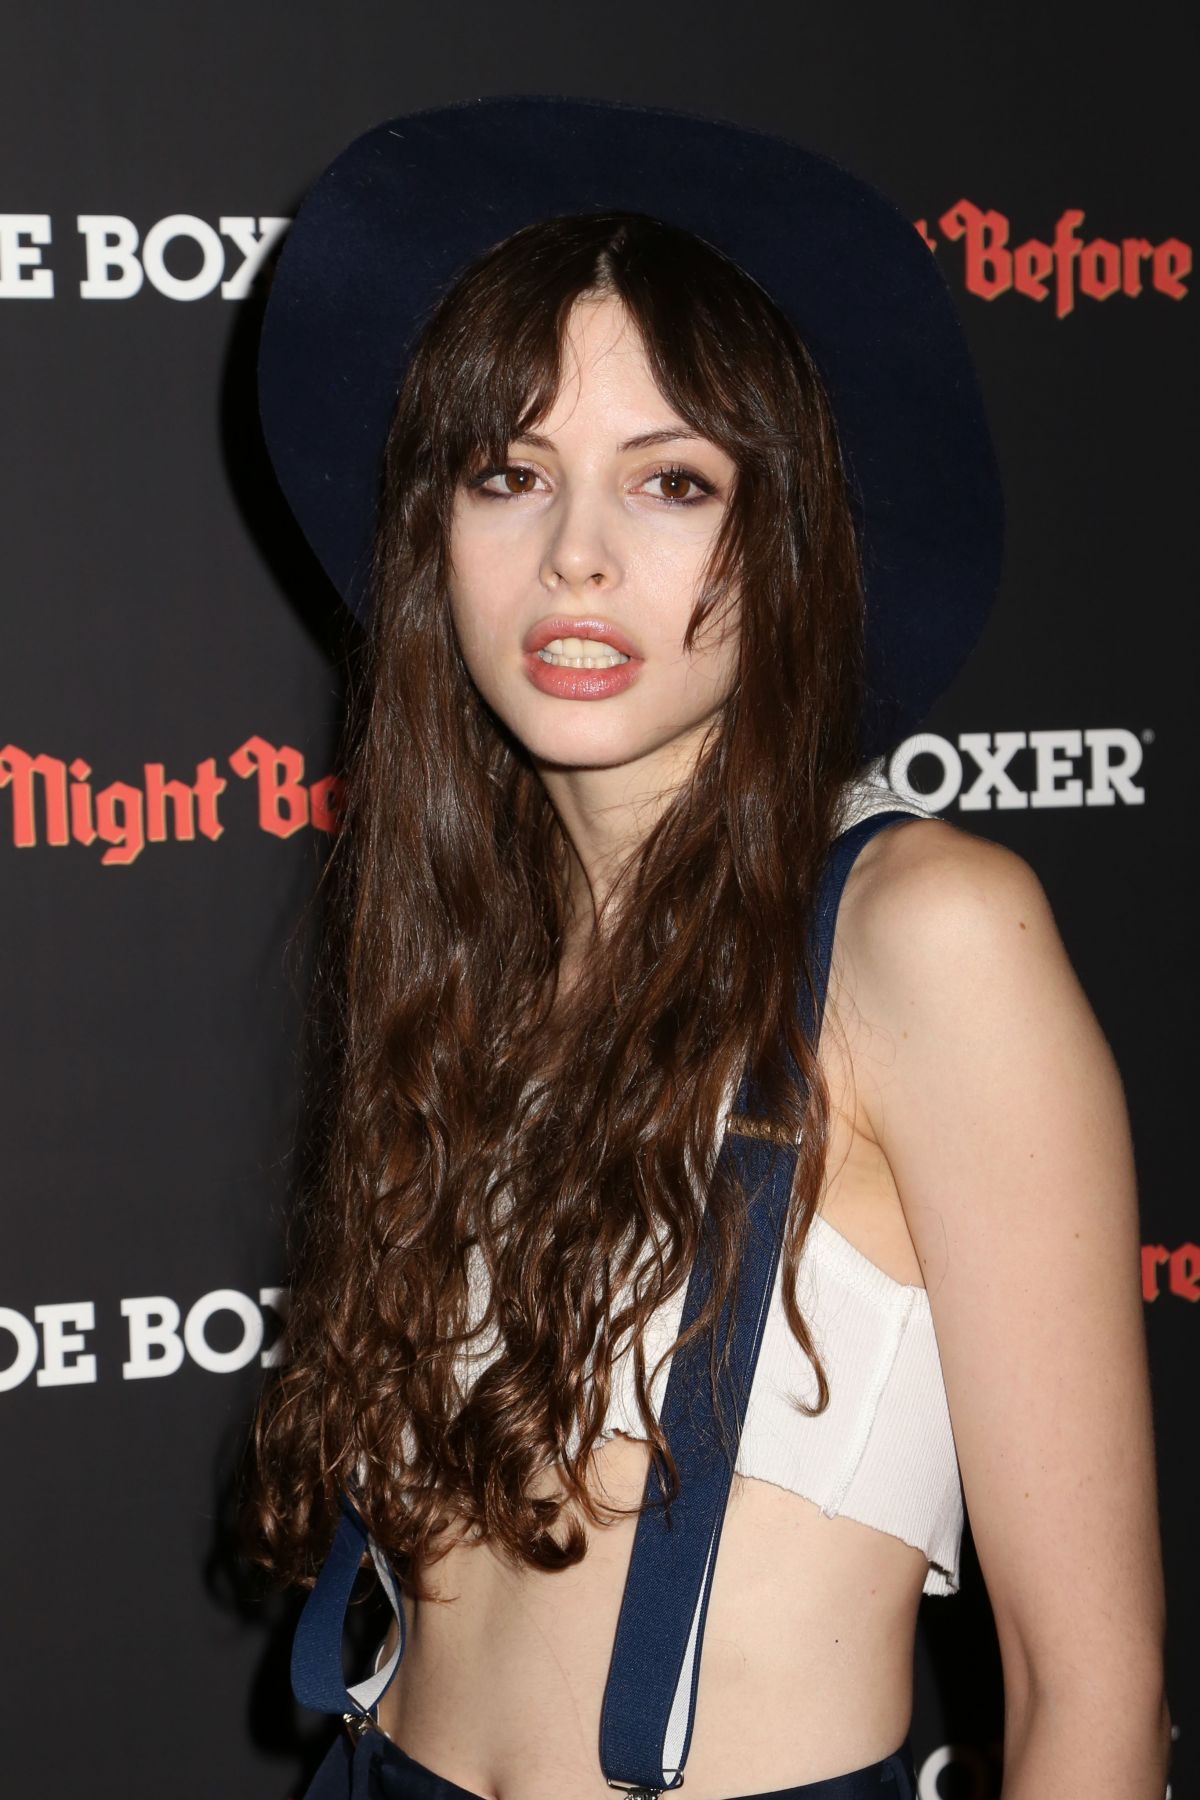 Fotos Kemp Muhl nudes (39 photo), Tits, Leaked, Twitter, see through 2020